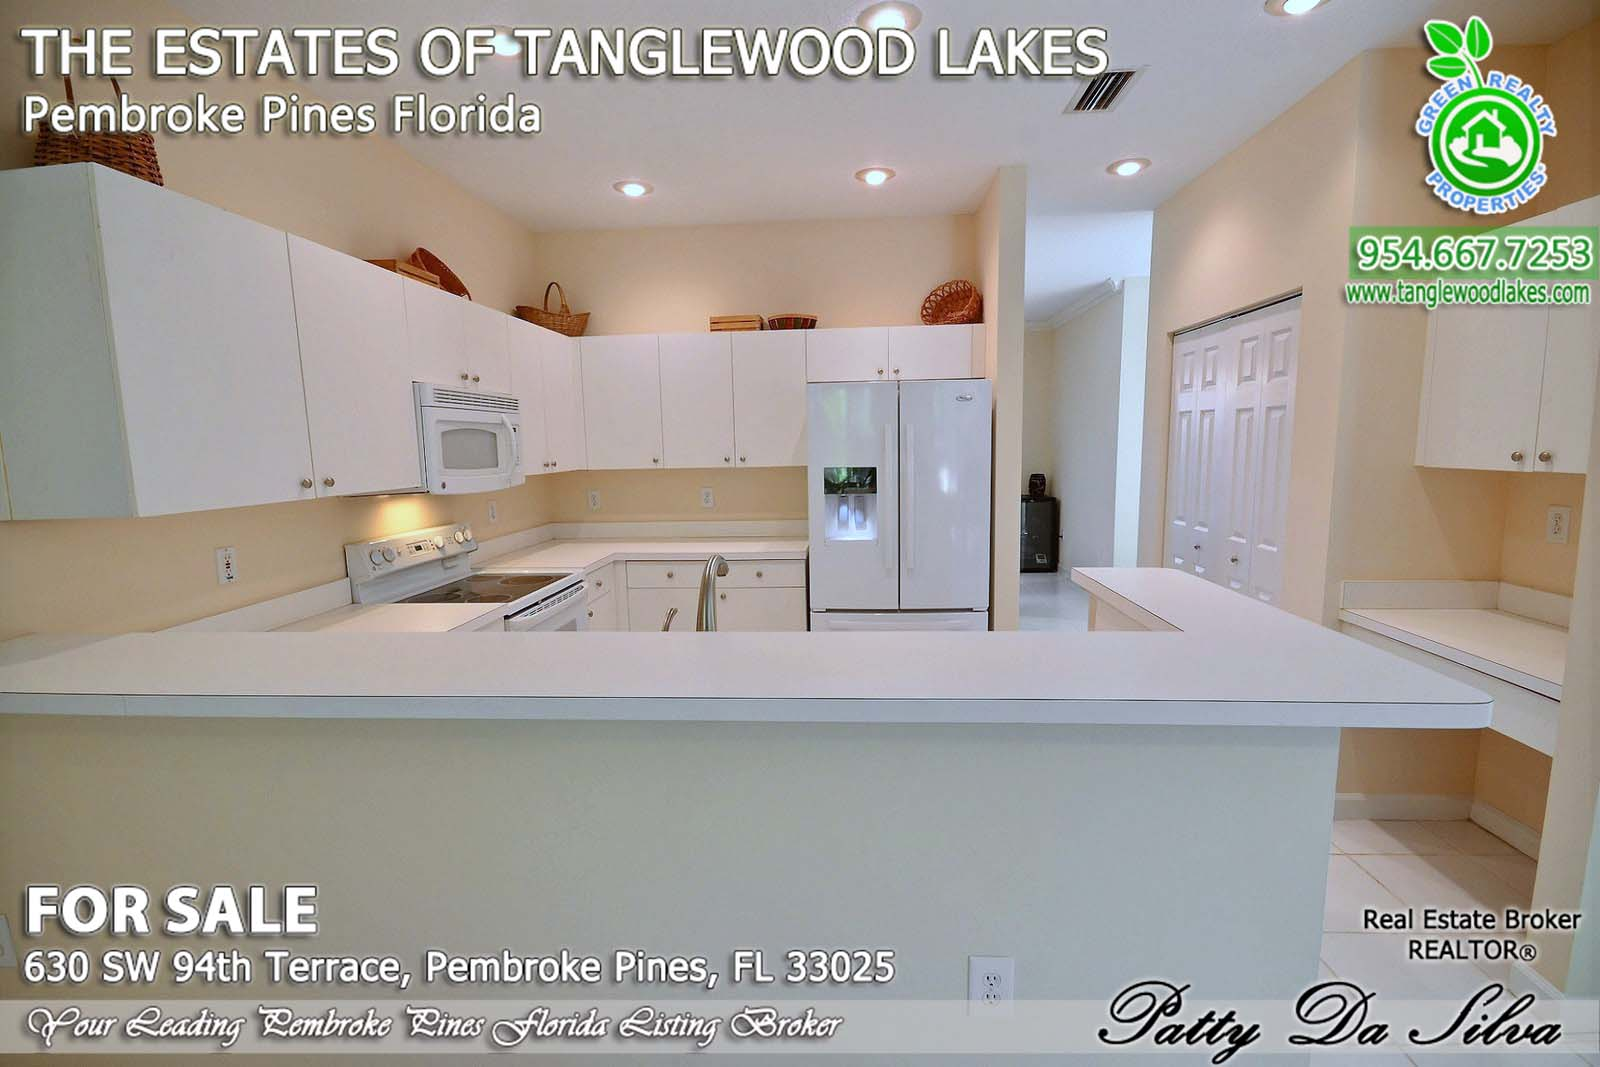 Homes For Sale in Pembroke Pines FL